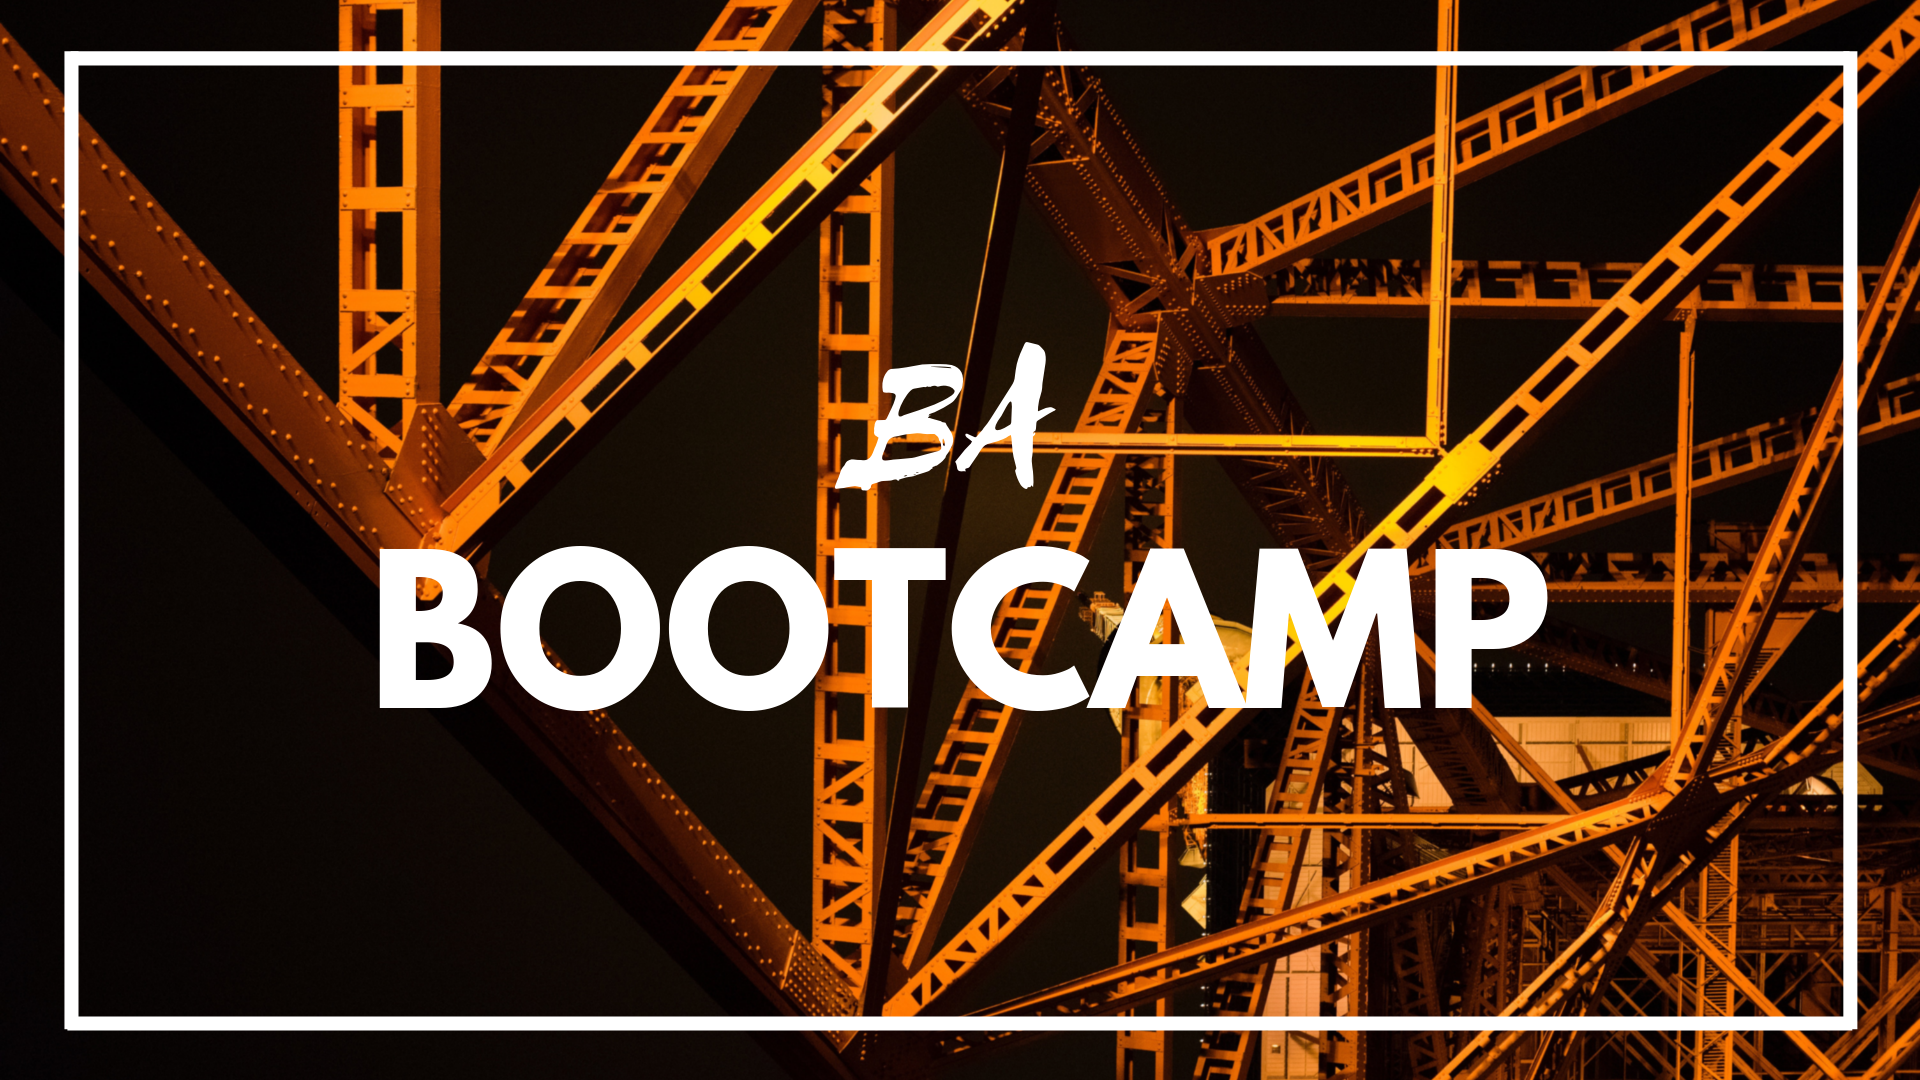 ba-bootcamp-header.png